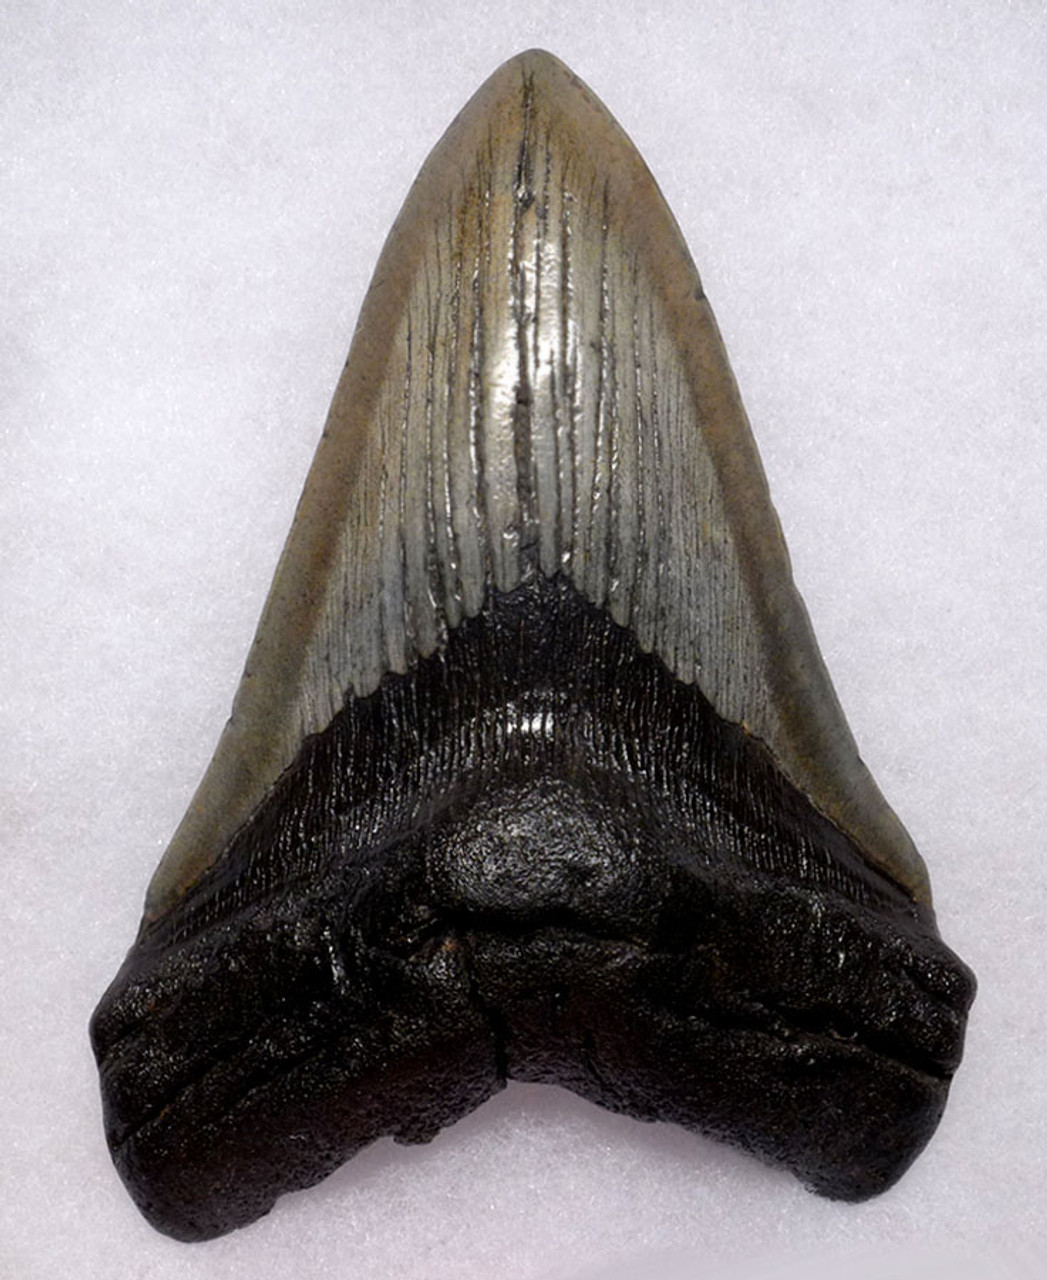 SH6-371 - UNRESTORED GIANT 6.1 INCH MEGALODON SHARK LOWER JAW TOOTH